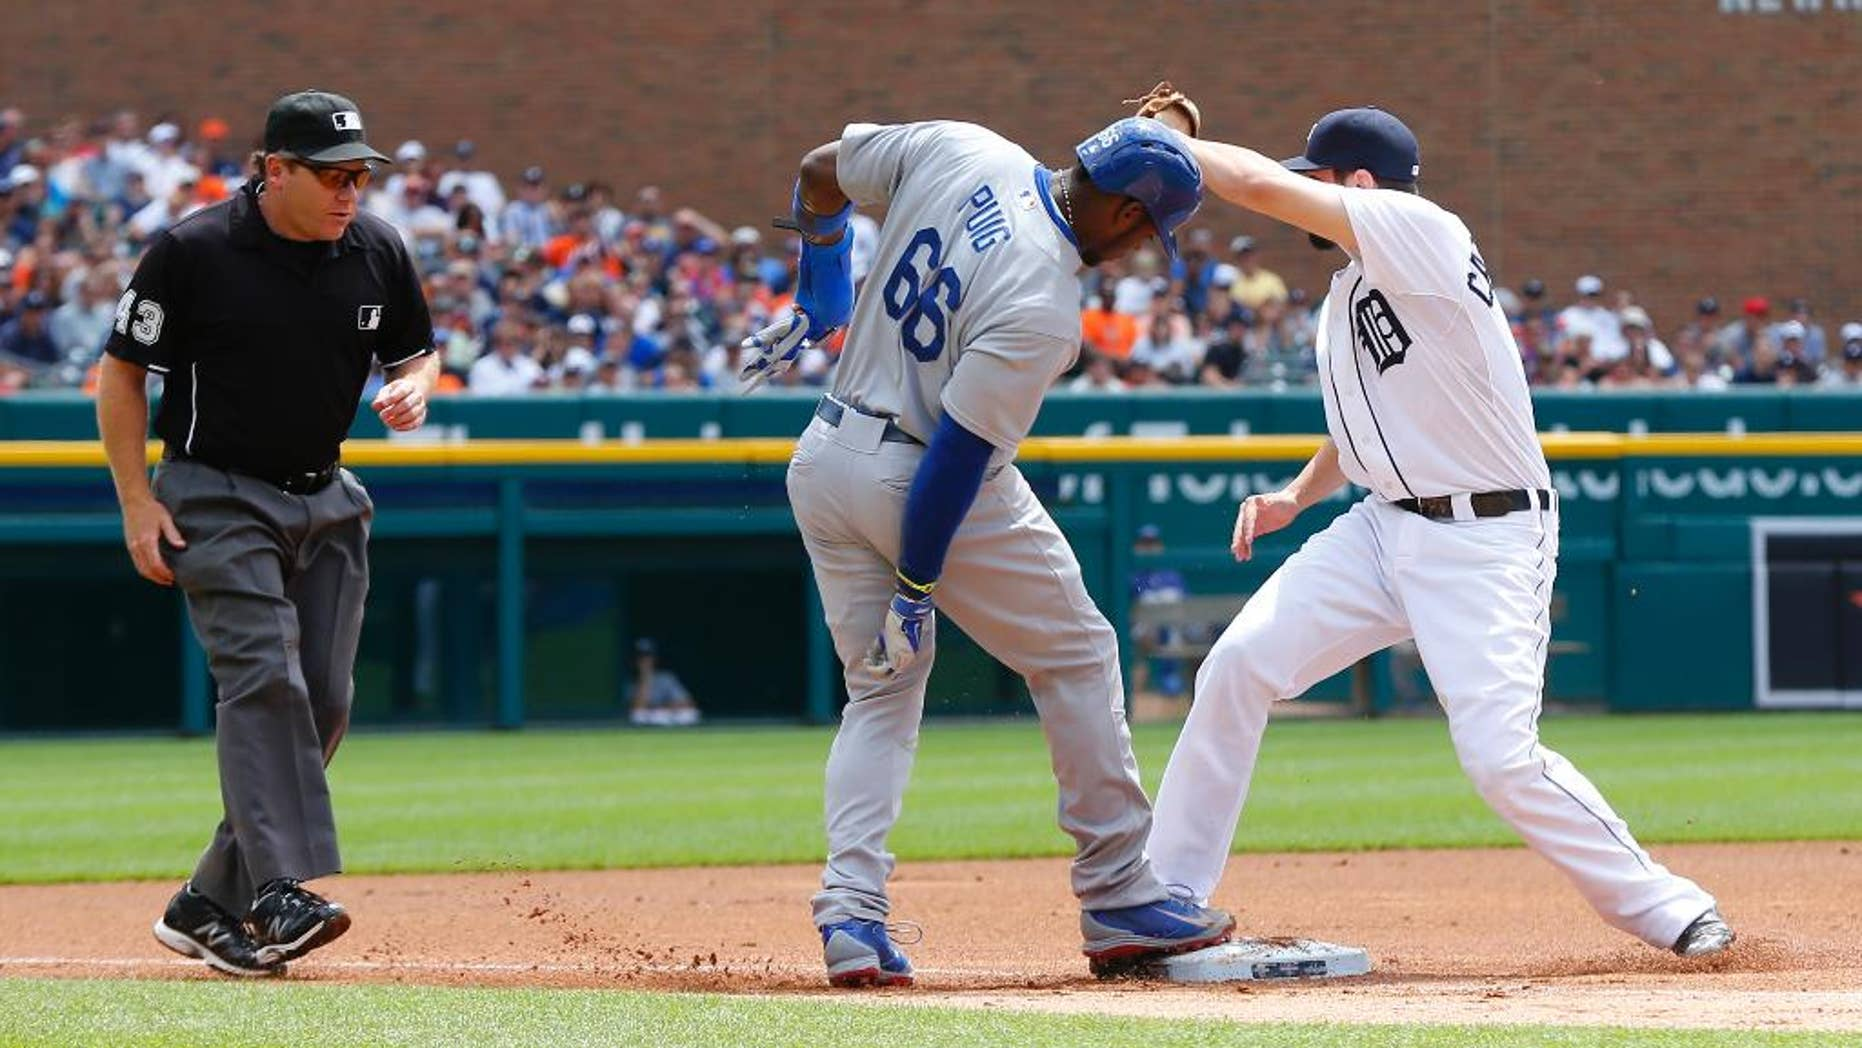 Detroit Tigers third baseman Nick Castellanos shows the ball to third base umpire Paul Schrieber after tagging third base before Los Angeles Dodgers' Yasiel Puig (66) could tag up on a Hanley Ramirez fielders choice in the first inning of a baseball game in Detroit, Wednesday, July 9, 2014. Puig was out on the play. (AP Photo/Paul Sancya)